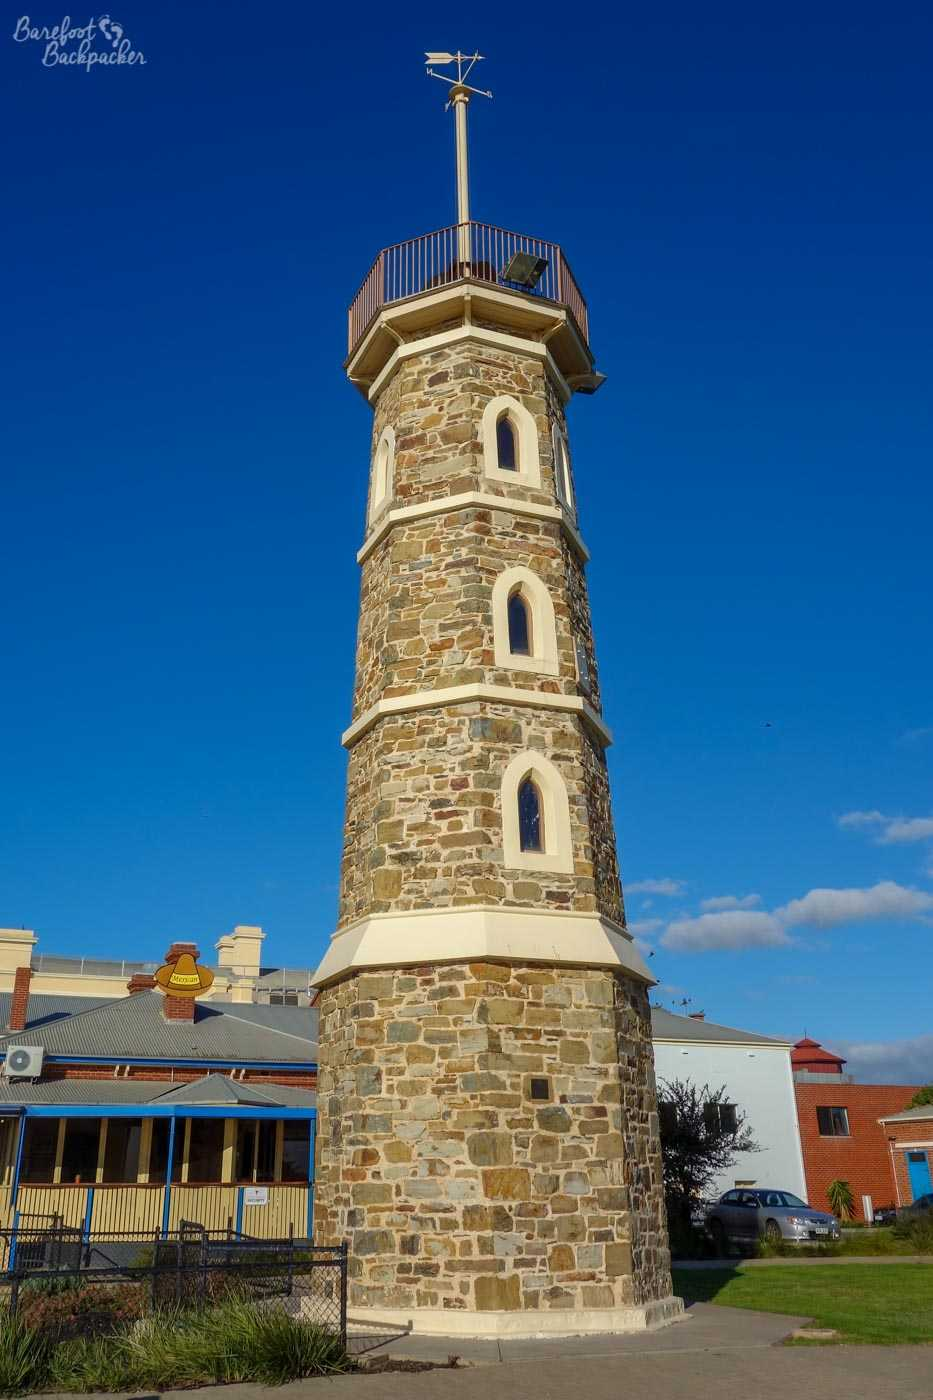 The time ball tower at Port Adelaide. A black ball was hoisted to the top at 12.57pm, and dropped at 1pm automatically by a signal from the nearby observatory. A way to mark the time in the days before wireless signals, never mind electronic personal timekeeping devices, it ceased being used in 1932. Other cities have cannon (like Edinburgh) for the same purpose.